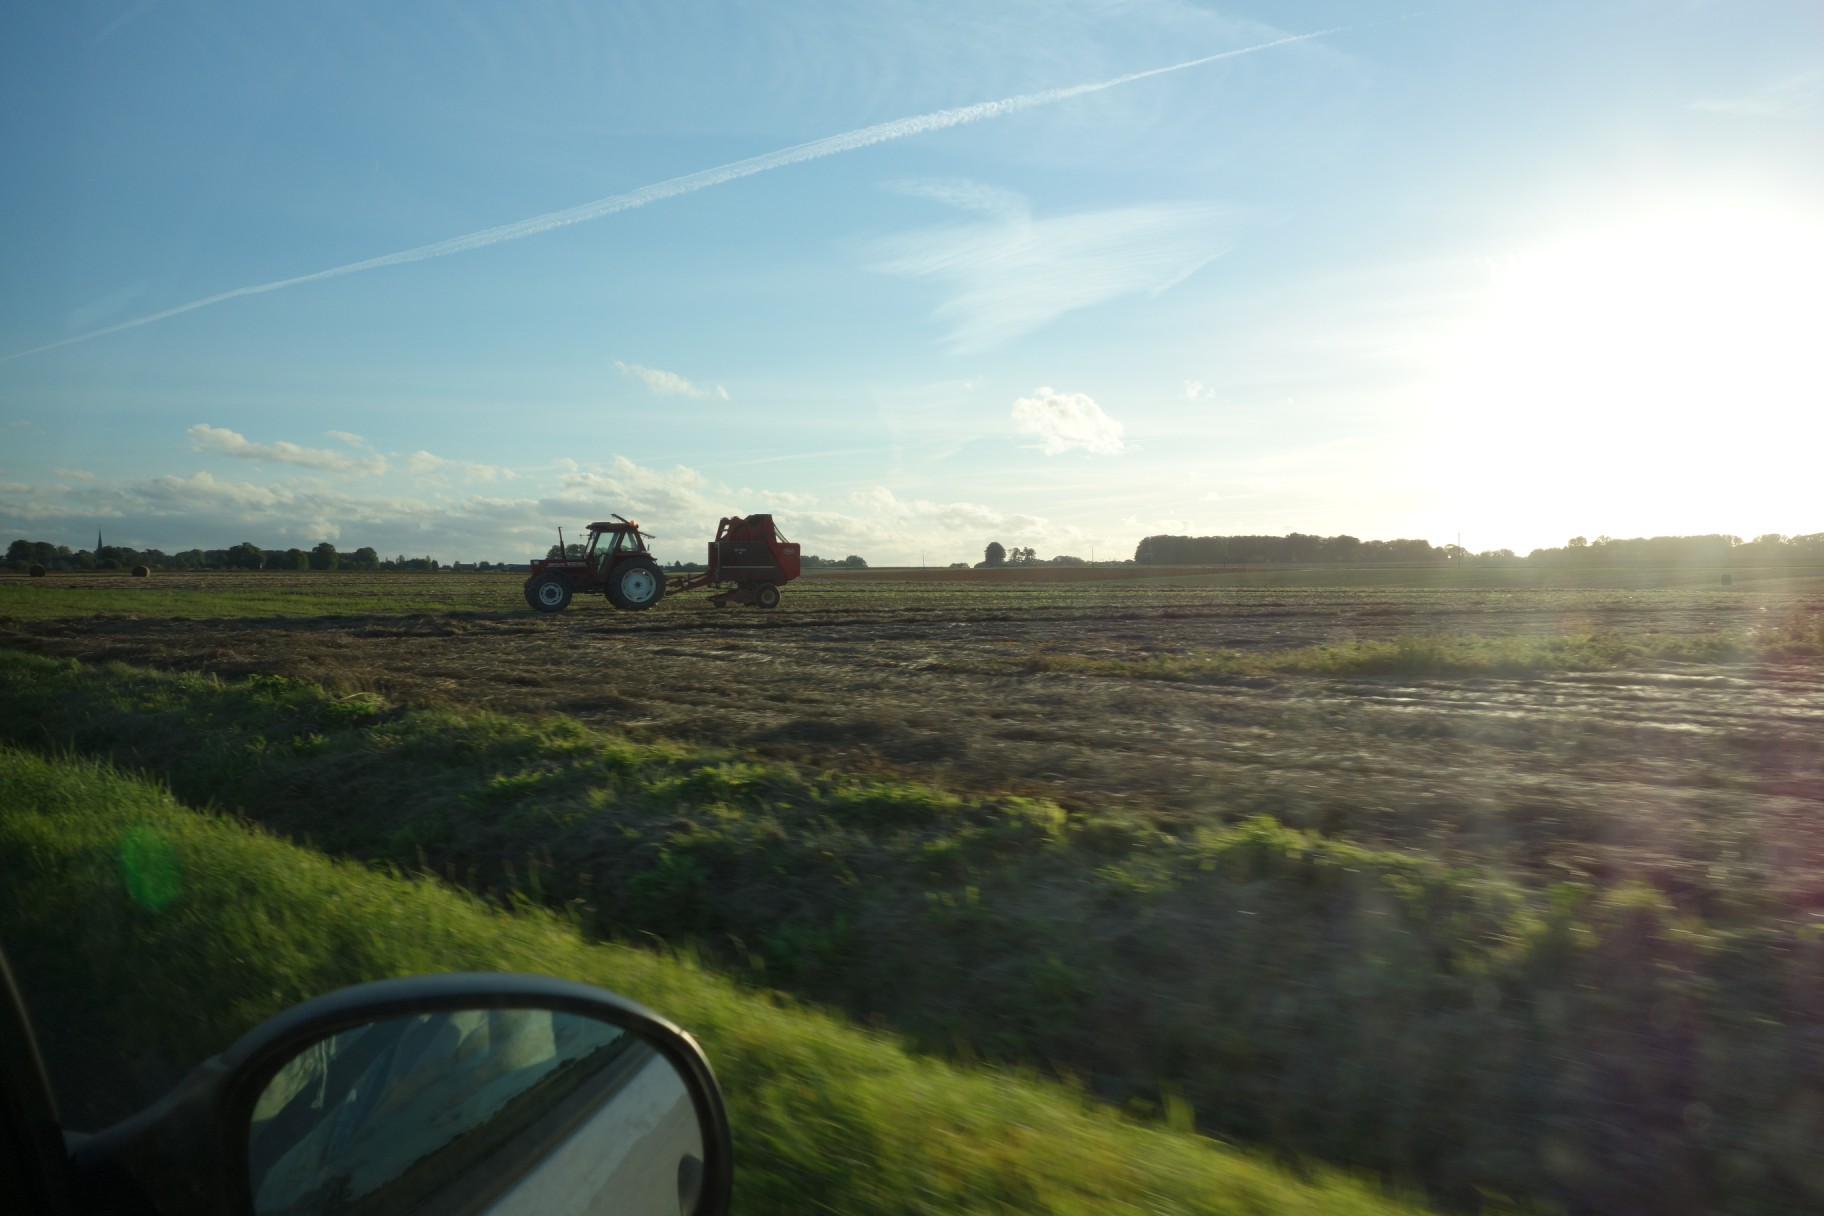 More machinery in Normandy